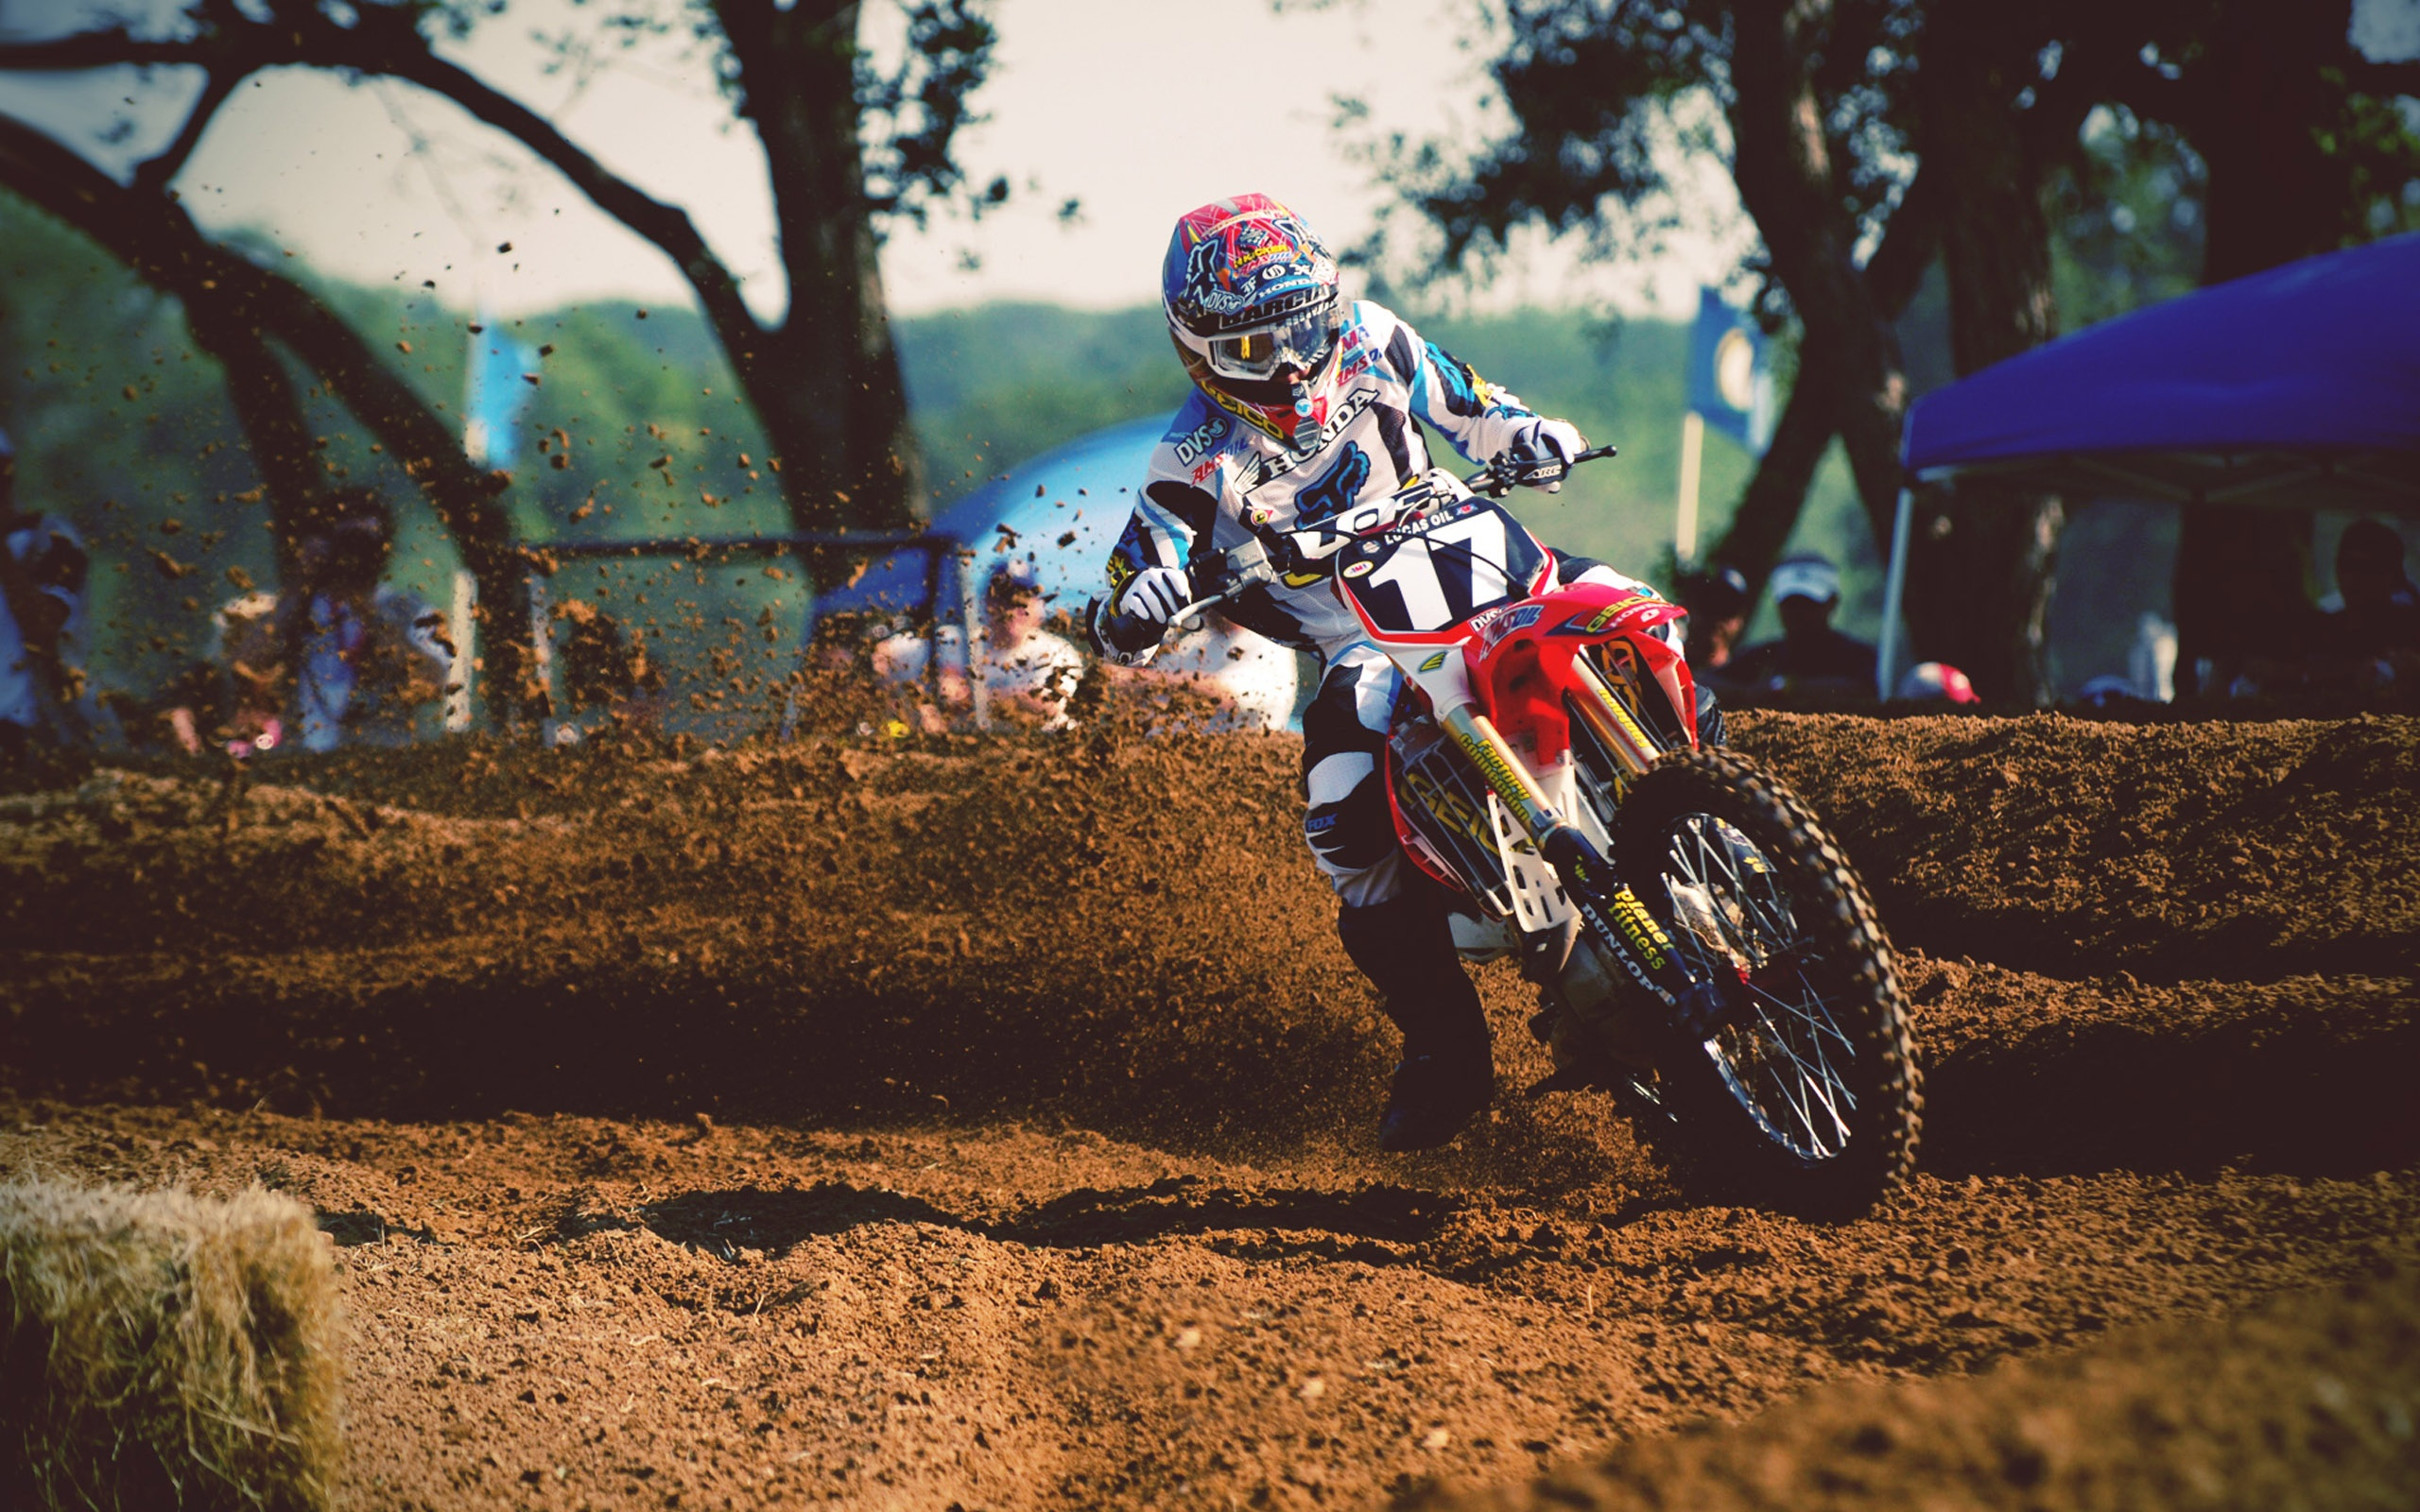 Great-dirt-bike-wallpaper-hd